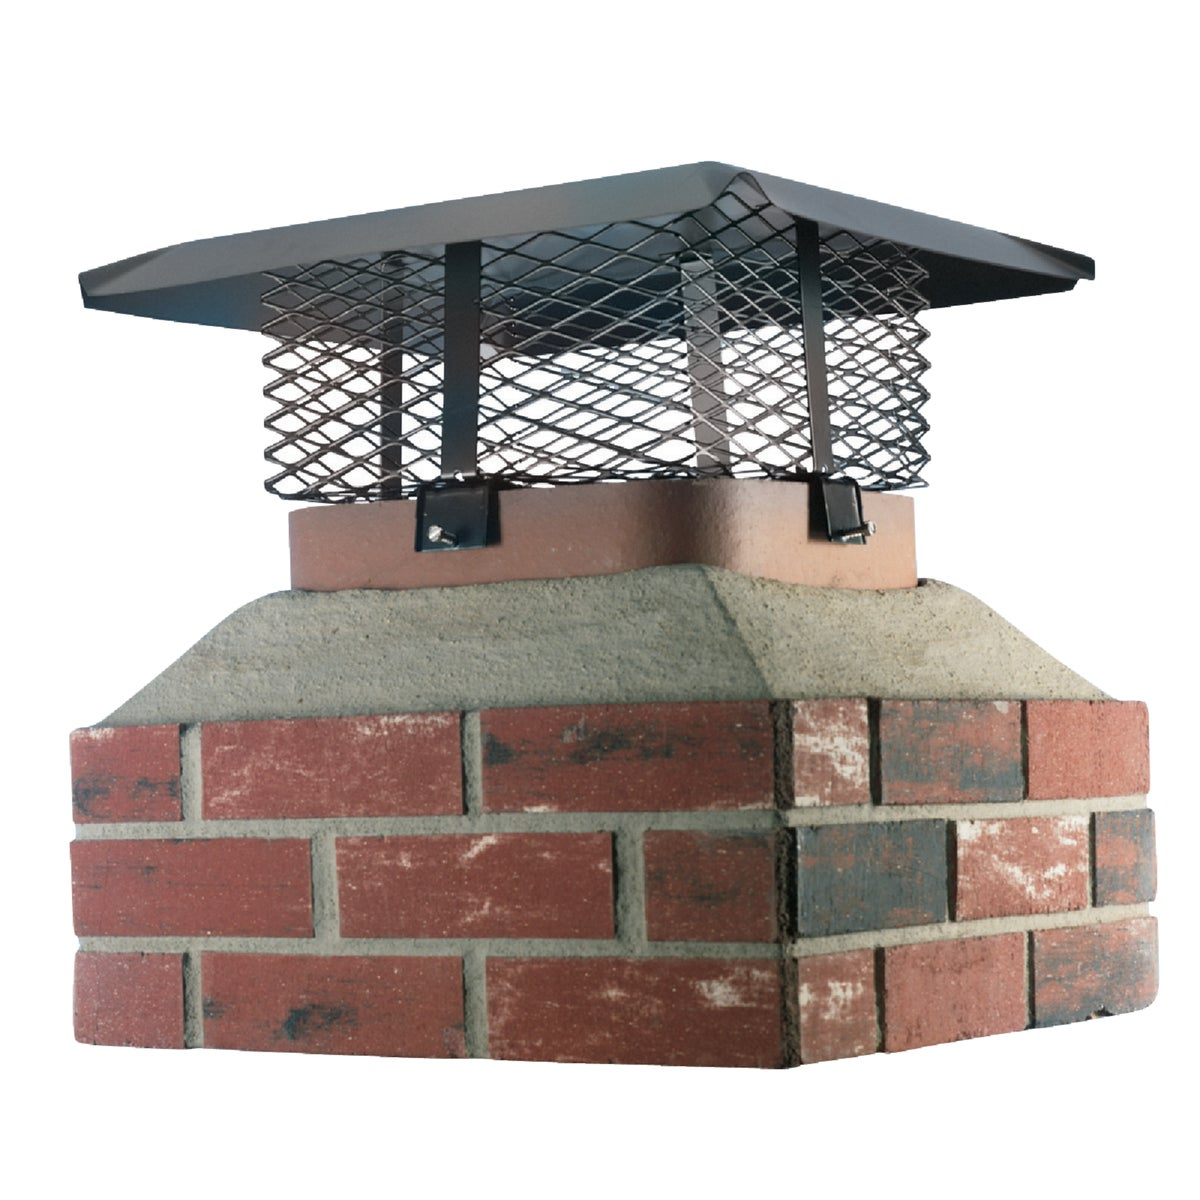 ADJUSTABLE CHIMNEY COVER - SCADJ-L by Hy C Company